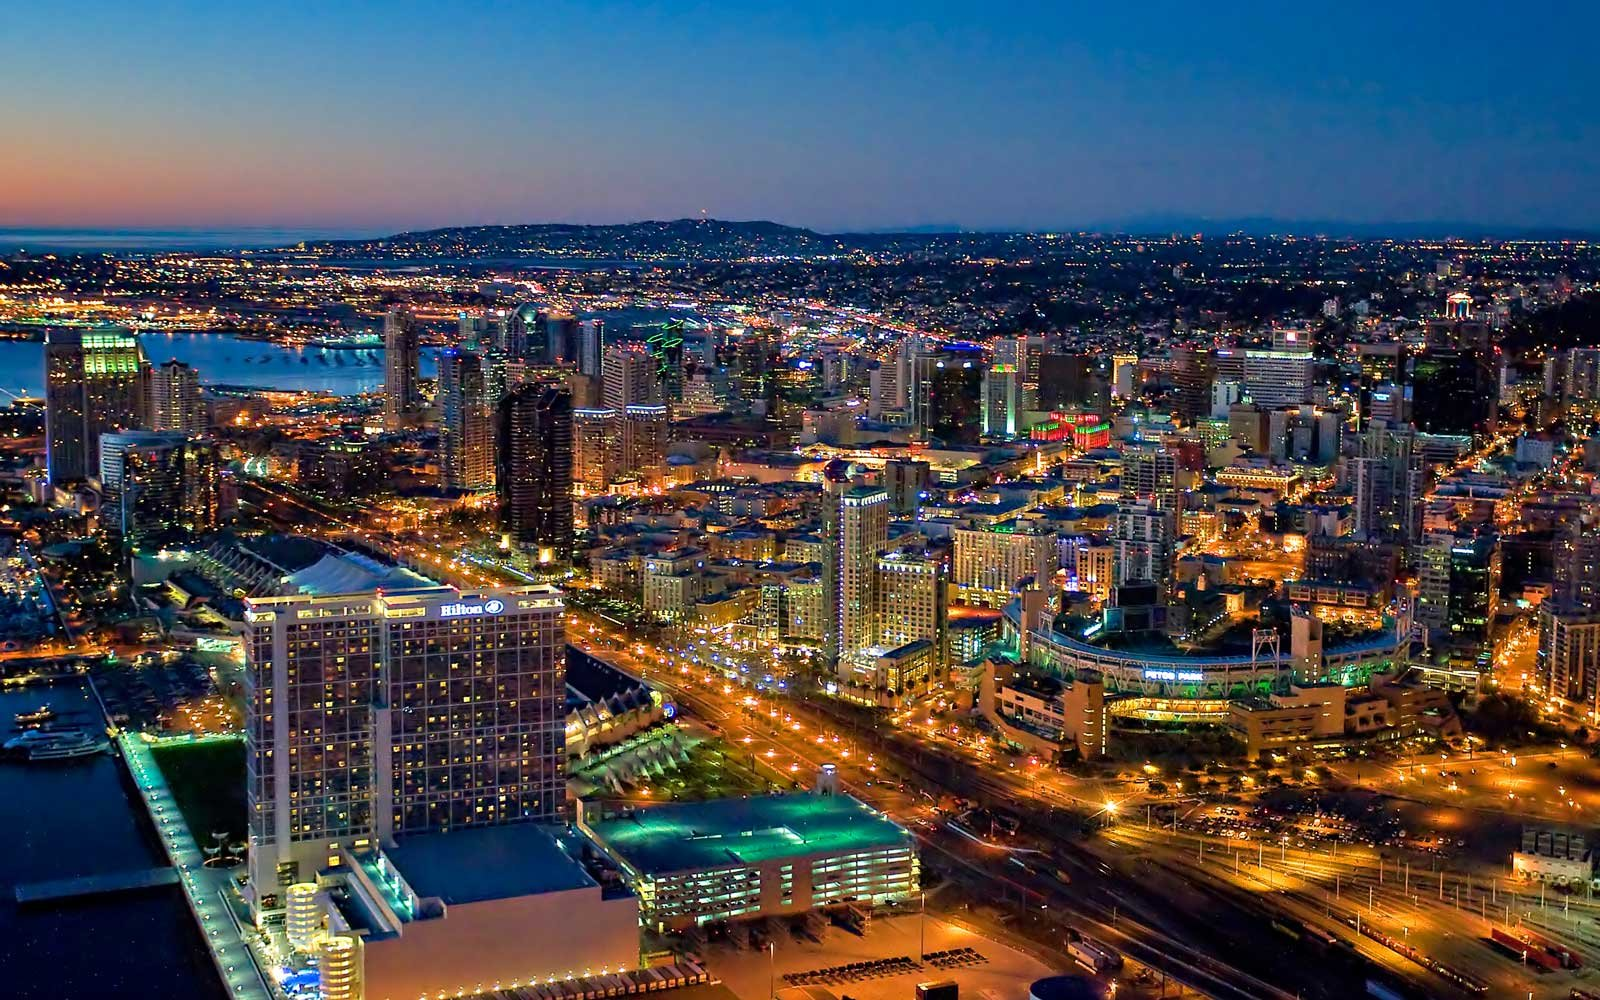 San Diego downtown area seen at nighttime